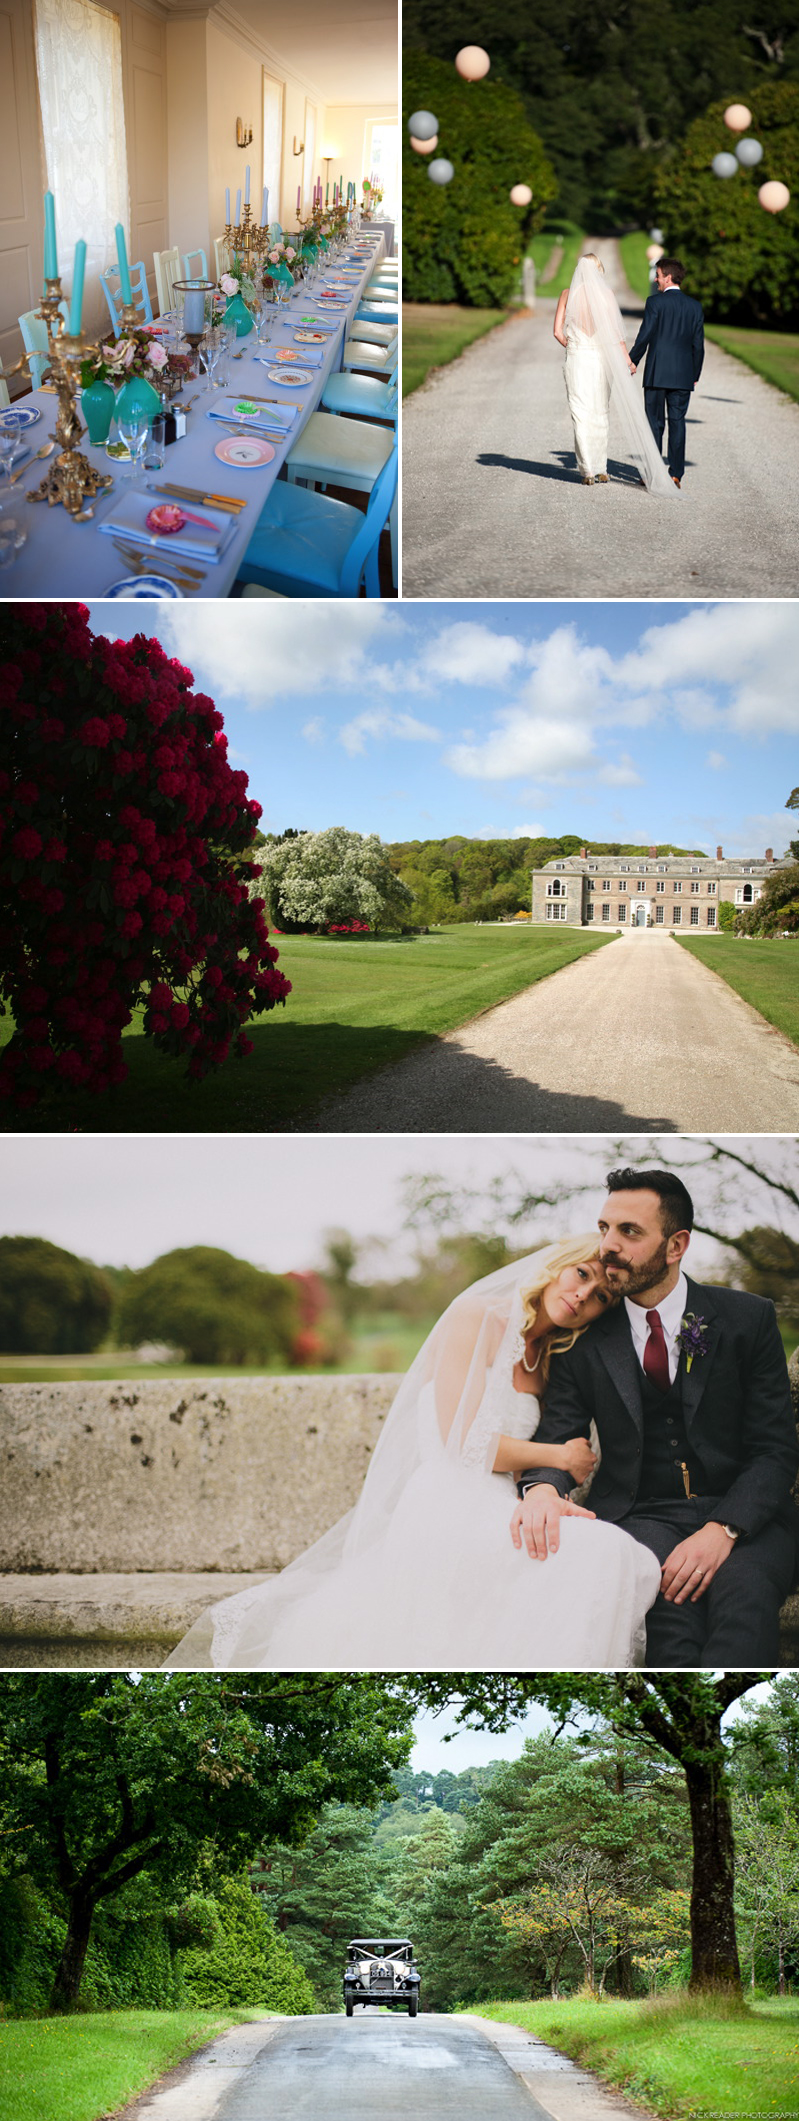 Coco Wedding Venues - The Coco Collection - Bocconoc, Cornwall.